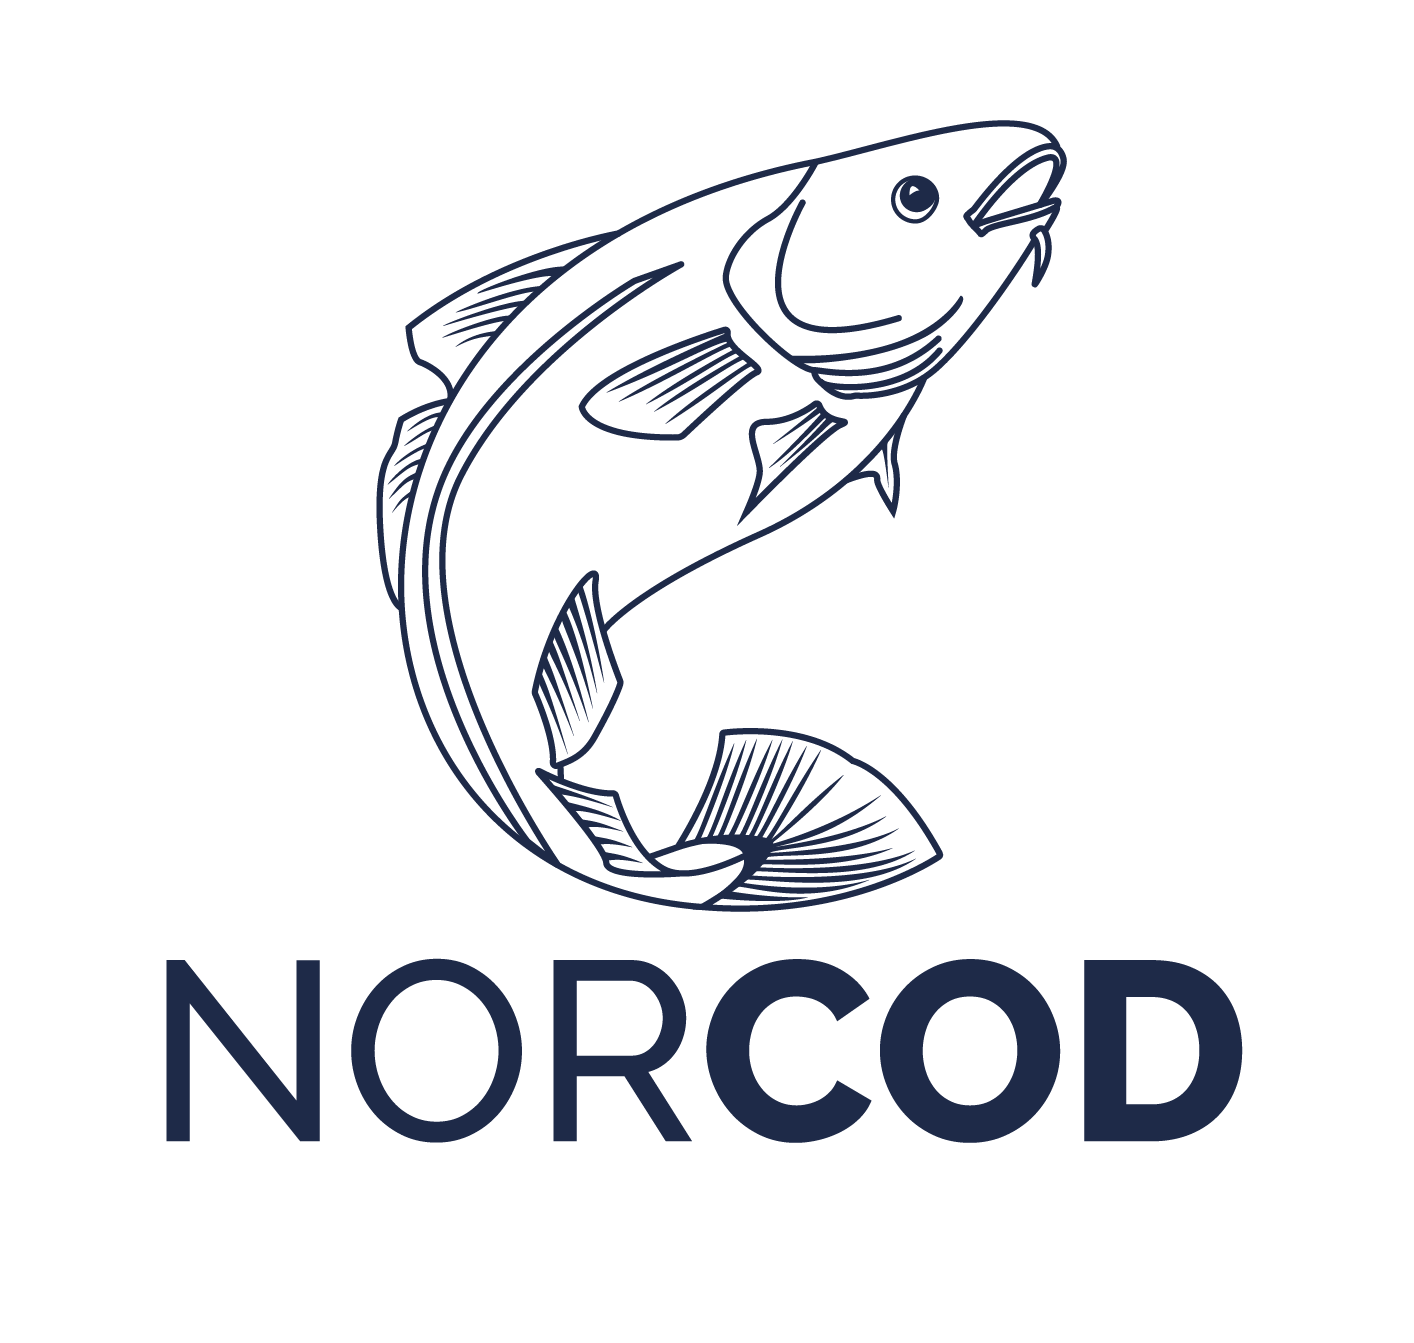 Norcod logo in blue